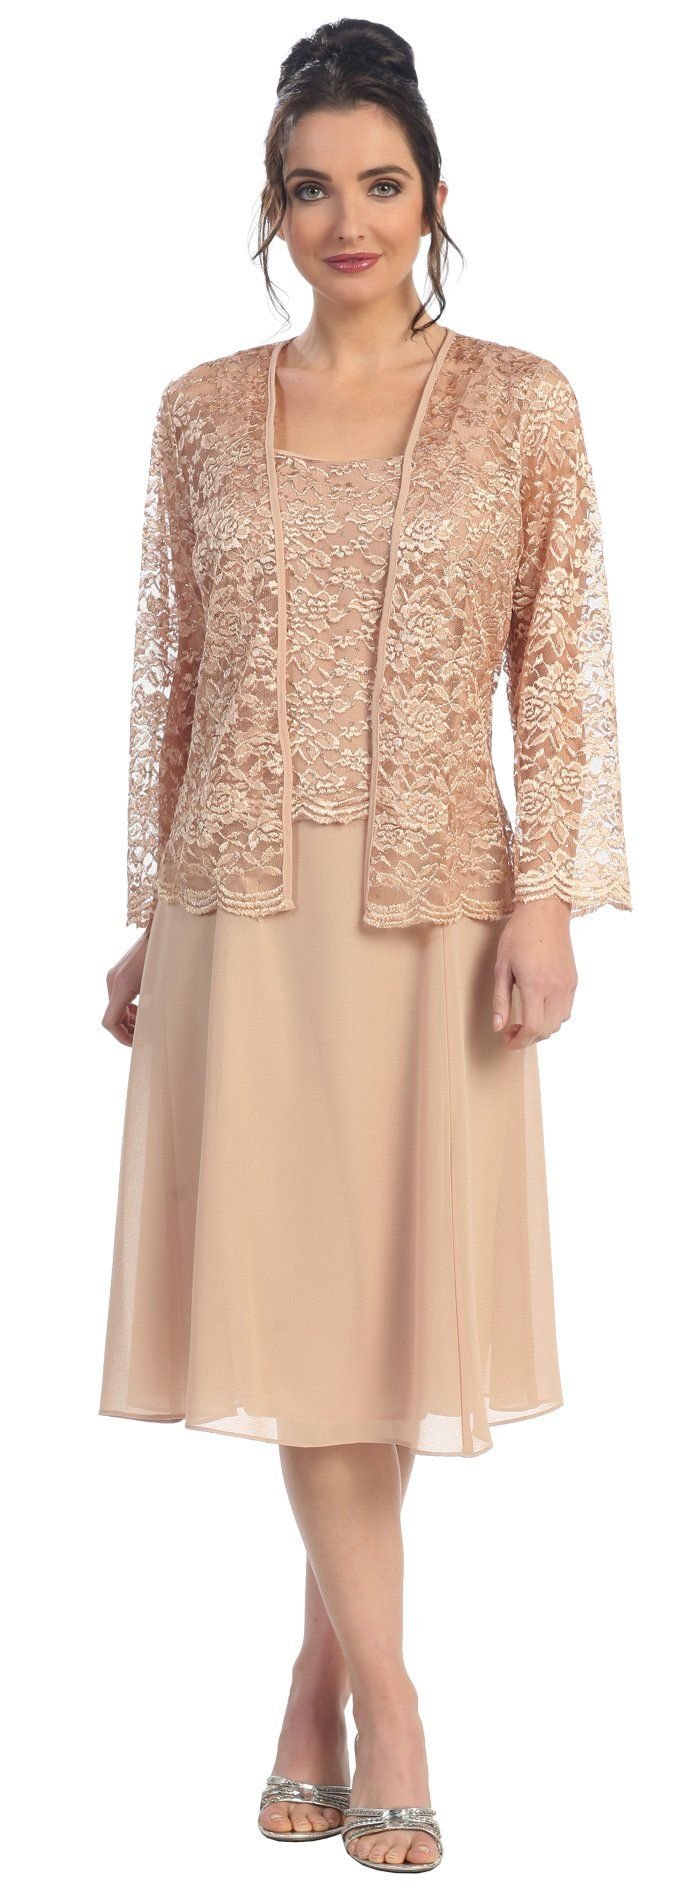 Mother of Groom Dresses Short | Short Gold Mother of Groom Dress Chiffon Knee Length Lace Jacket (7 ...